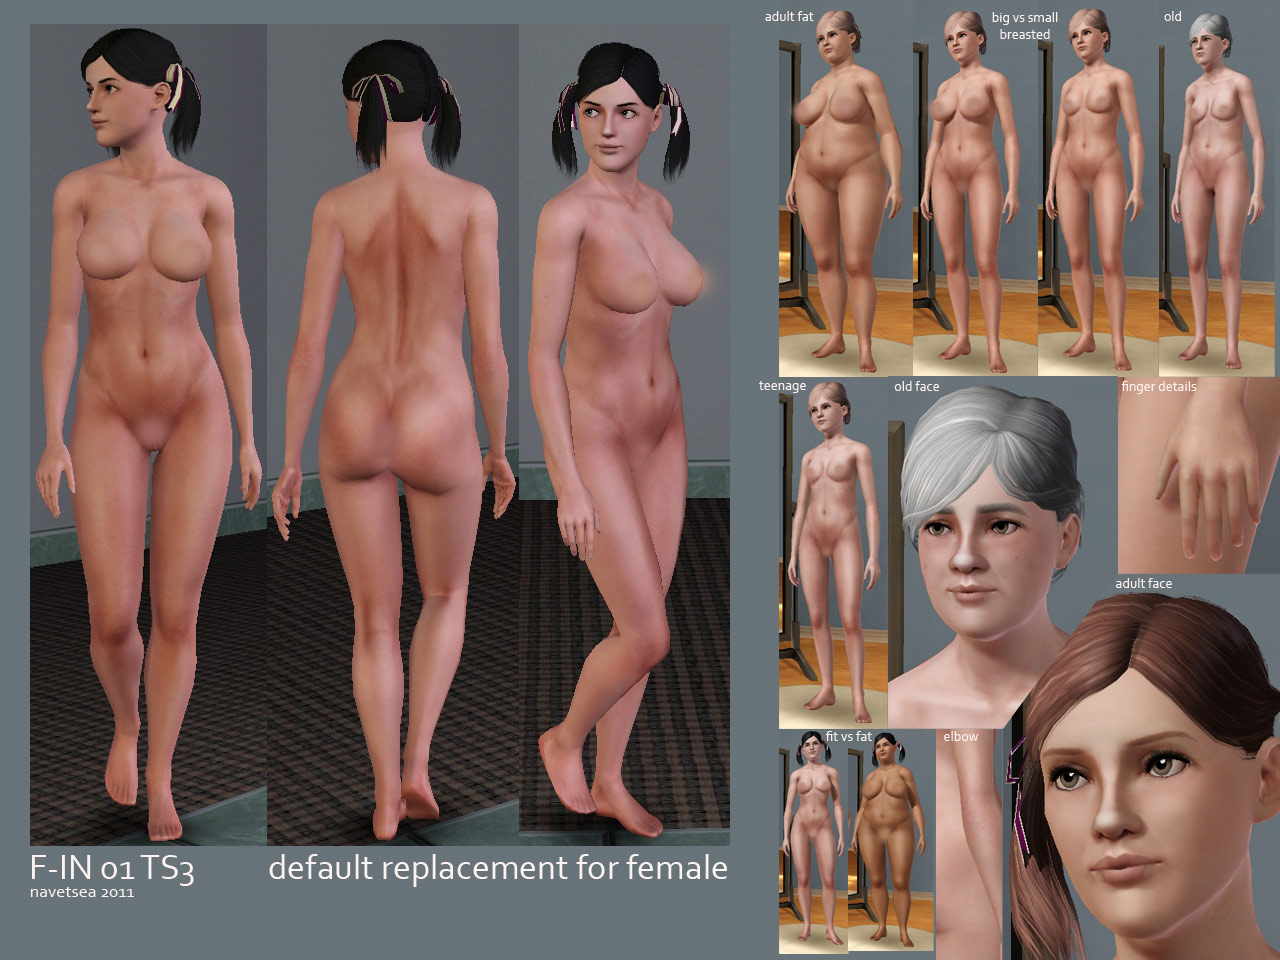 Sims 3 nude skins free cartoon photo